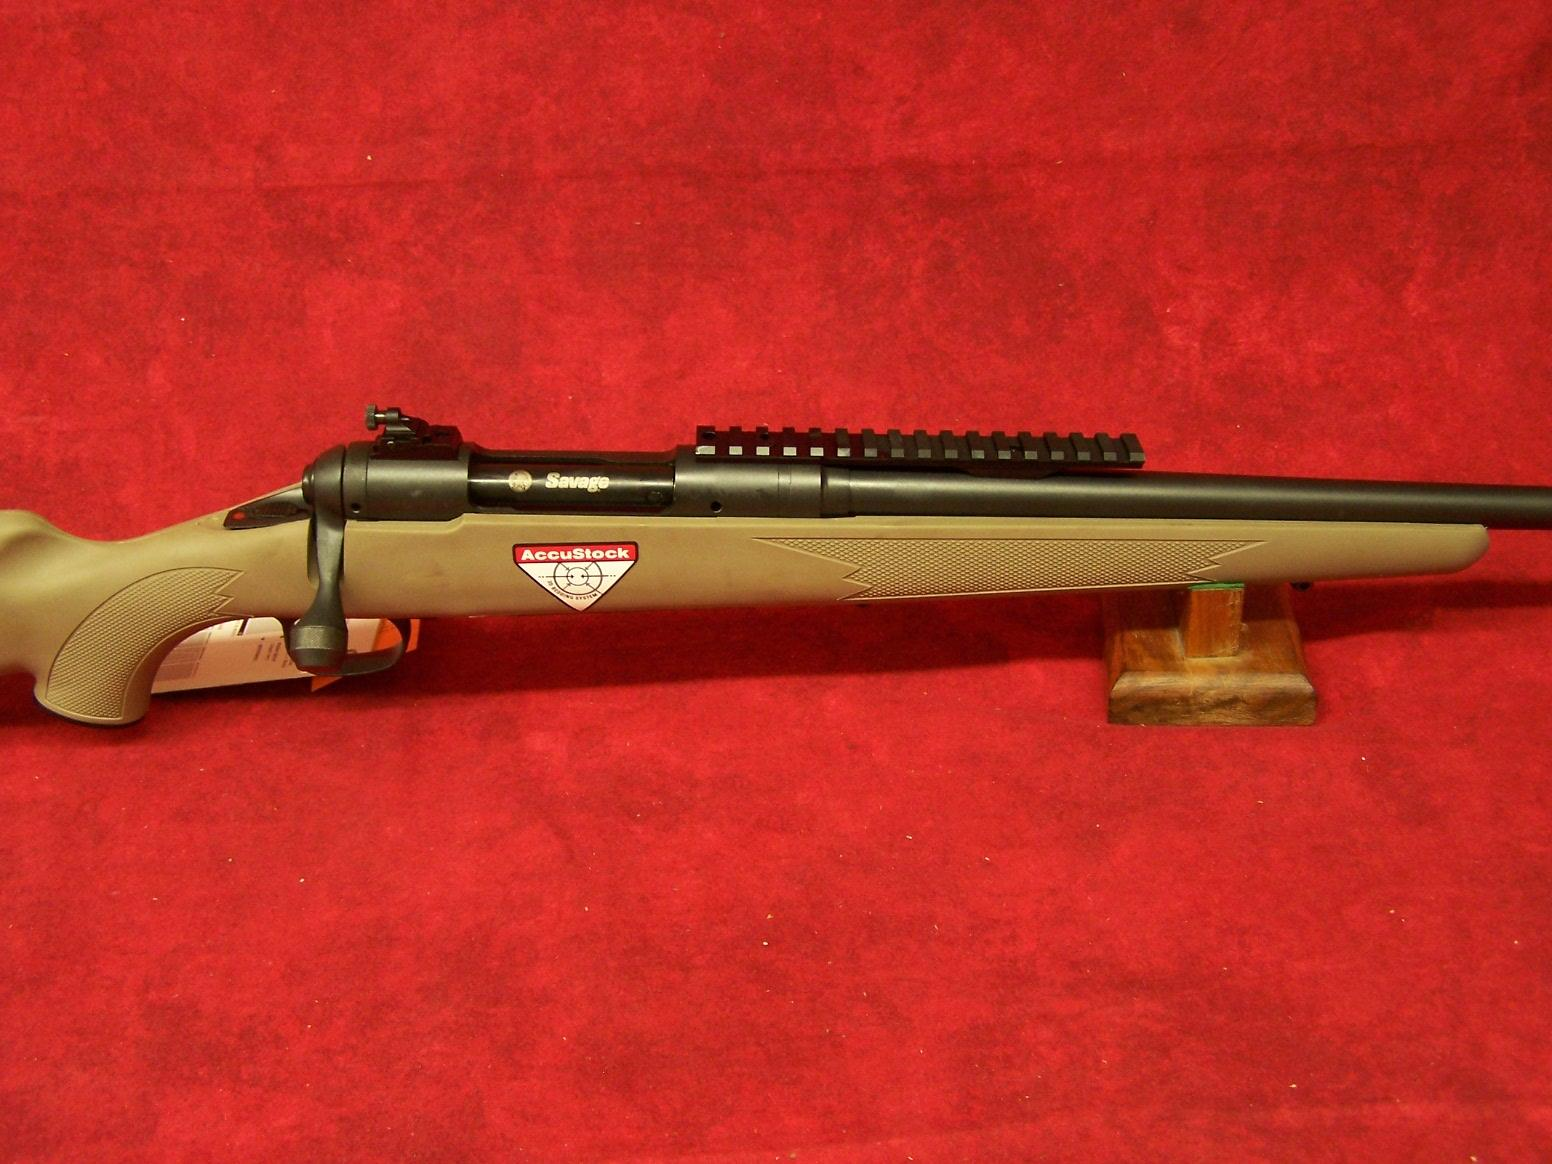 "Savage 11 Scout .308 Win 18"" Barrel Matte Black Muzzle Brake Adj Sights Synthetic Stock FDE Finish 10 Rnd (22443)  Guns > Rifles > Savage Rifles > 11/111"